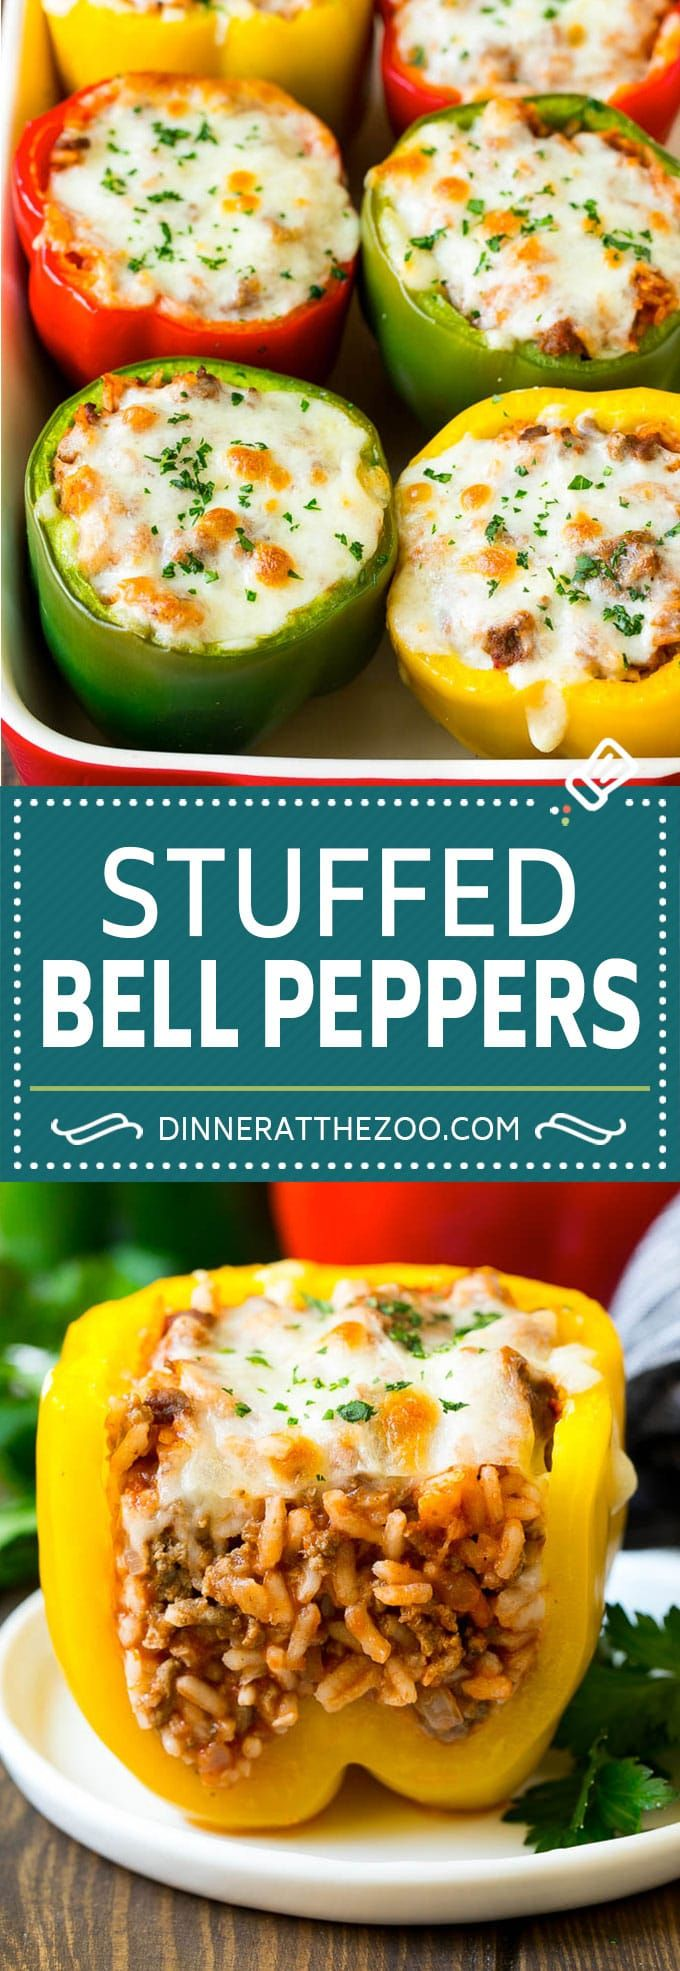 Stuffed Bell Peppers Recipe Stuffed Peppers Beef Rice Peppers Dinner Cheese Dinneratthezoo Stuffed Peppers Peppers Recipes Recipes